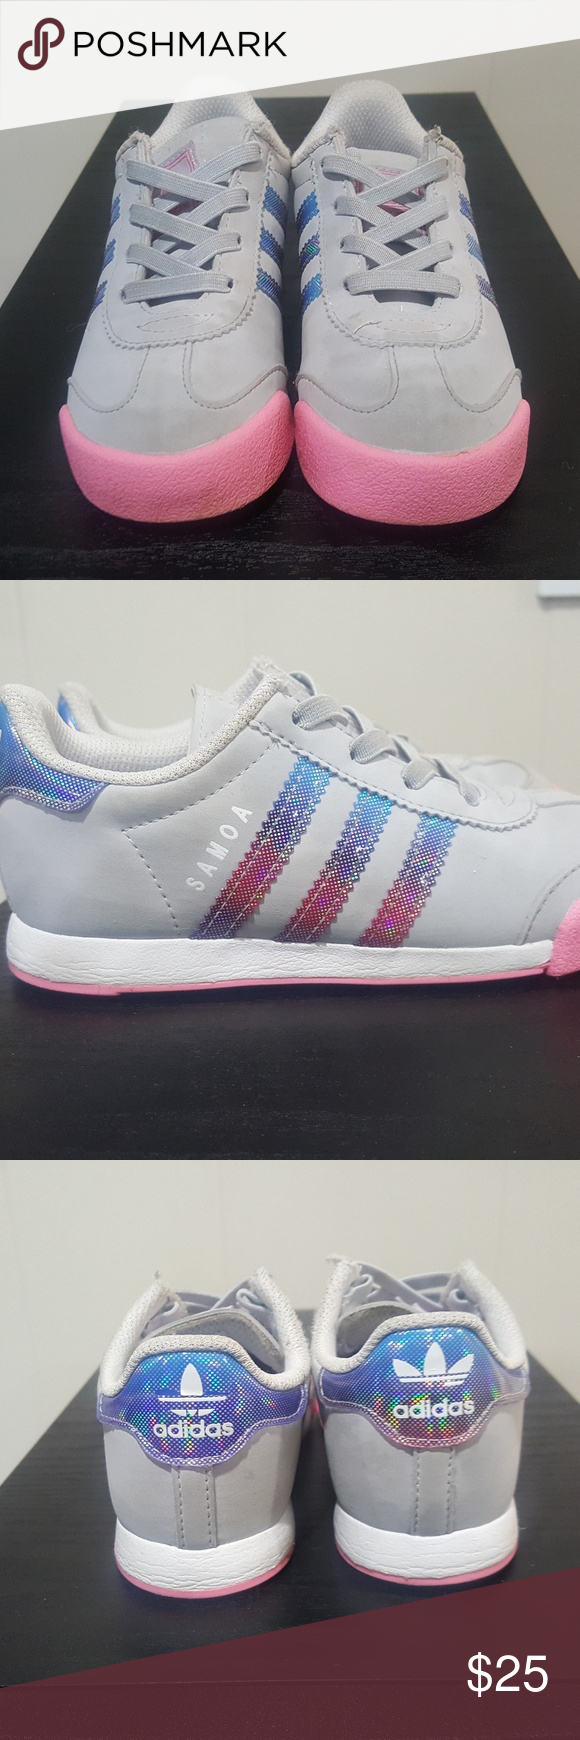 408171b22dbd0e Toddler Girl Adidas Samoa Sneakers In very good used condition. Only used  about a month. Toddler Size 9. Samoa Edition. adidas Shoes Sneakers